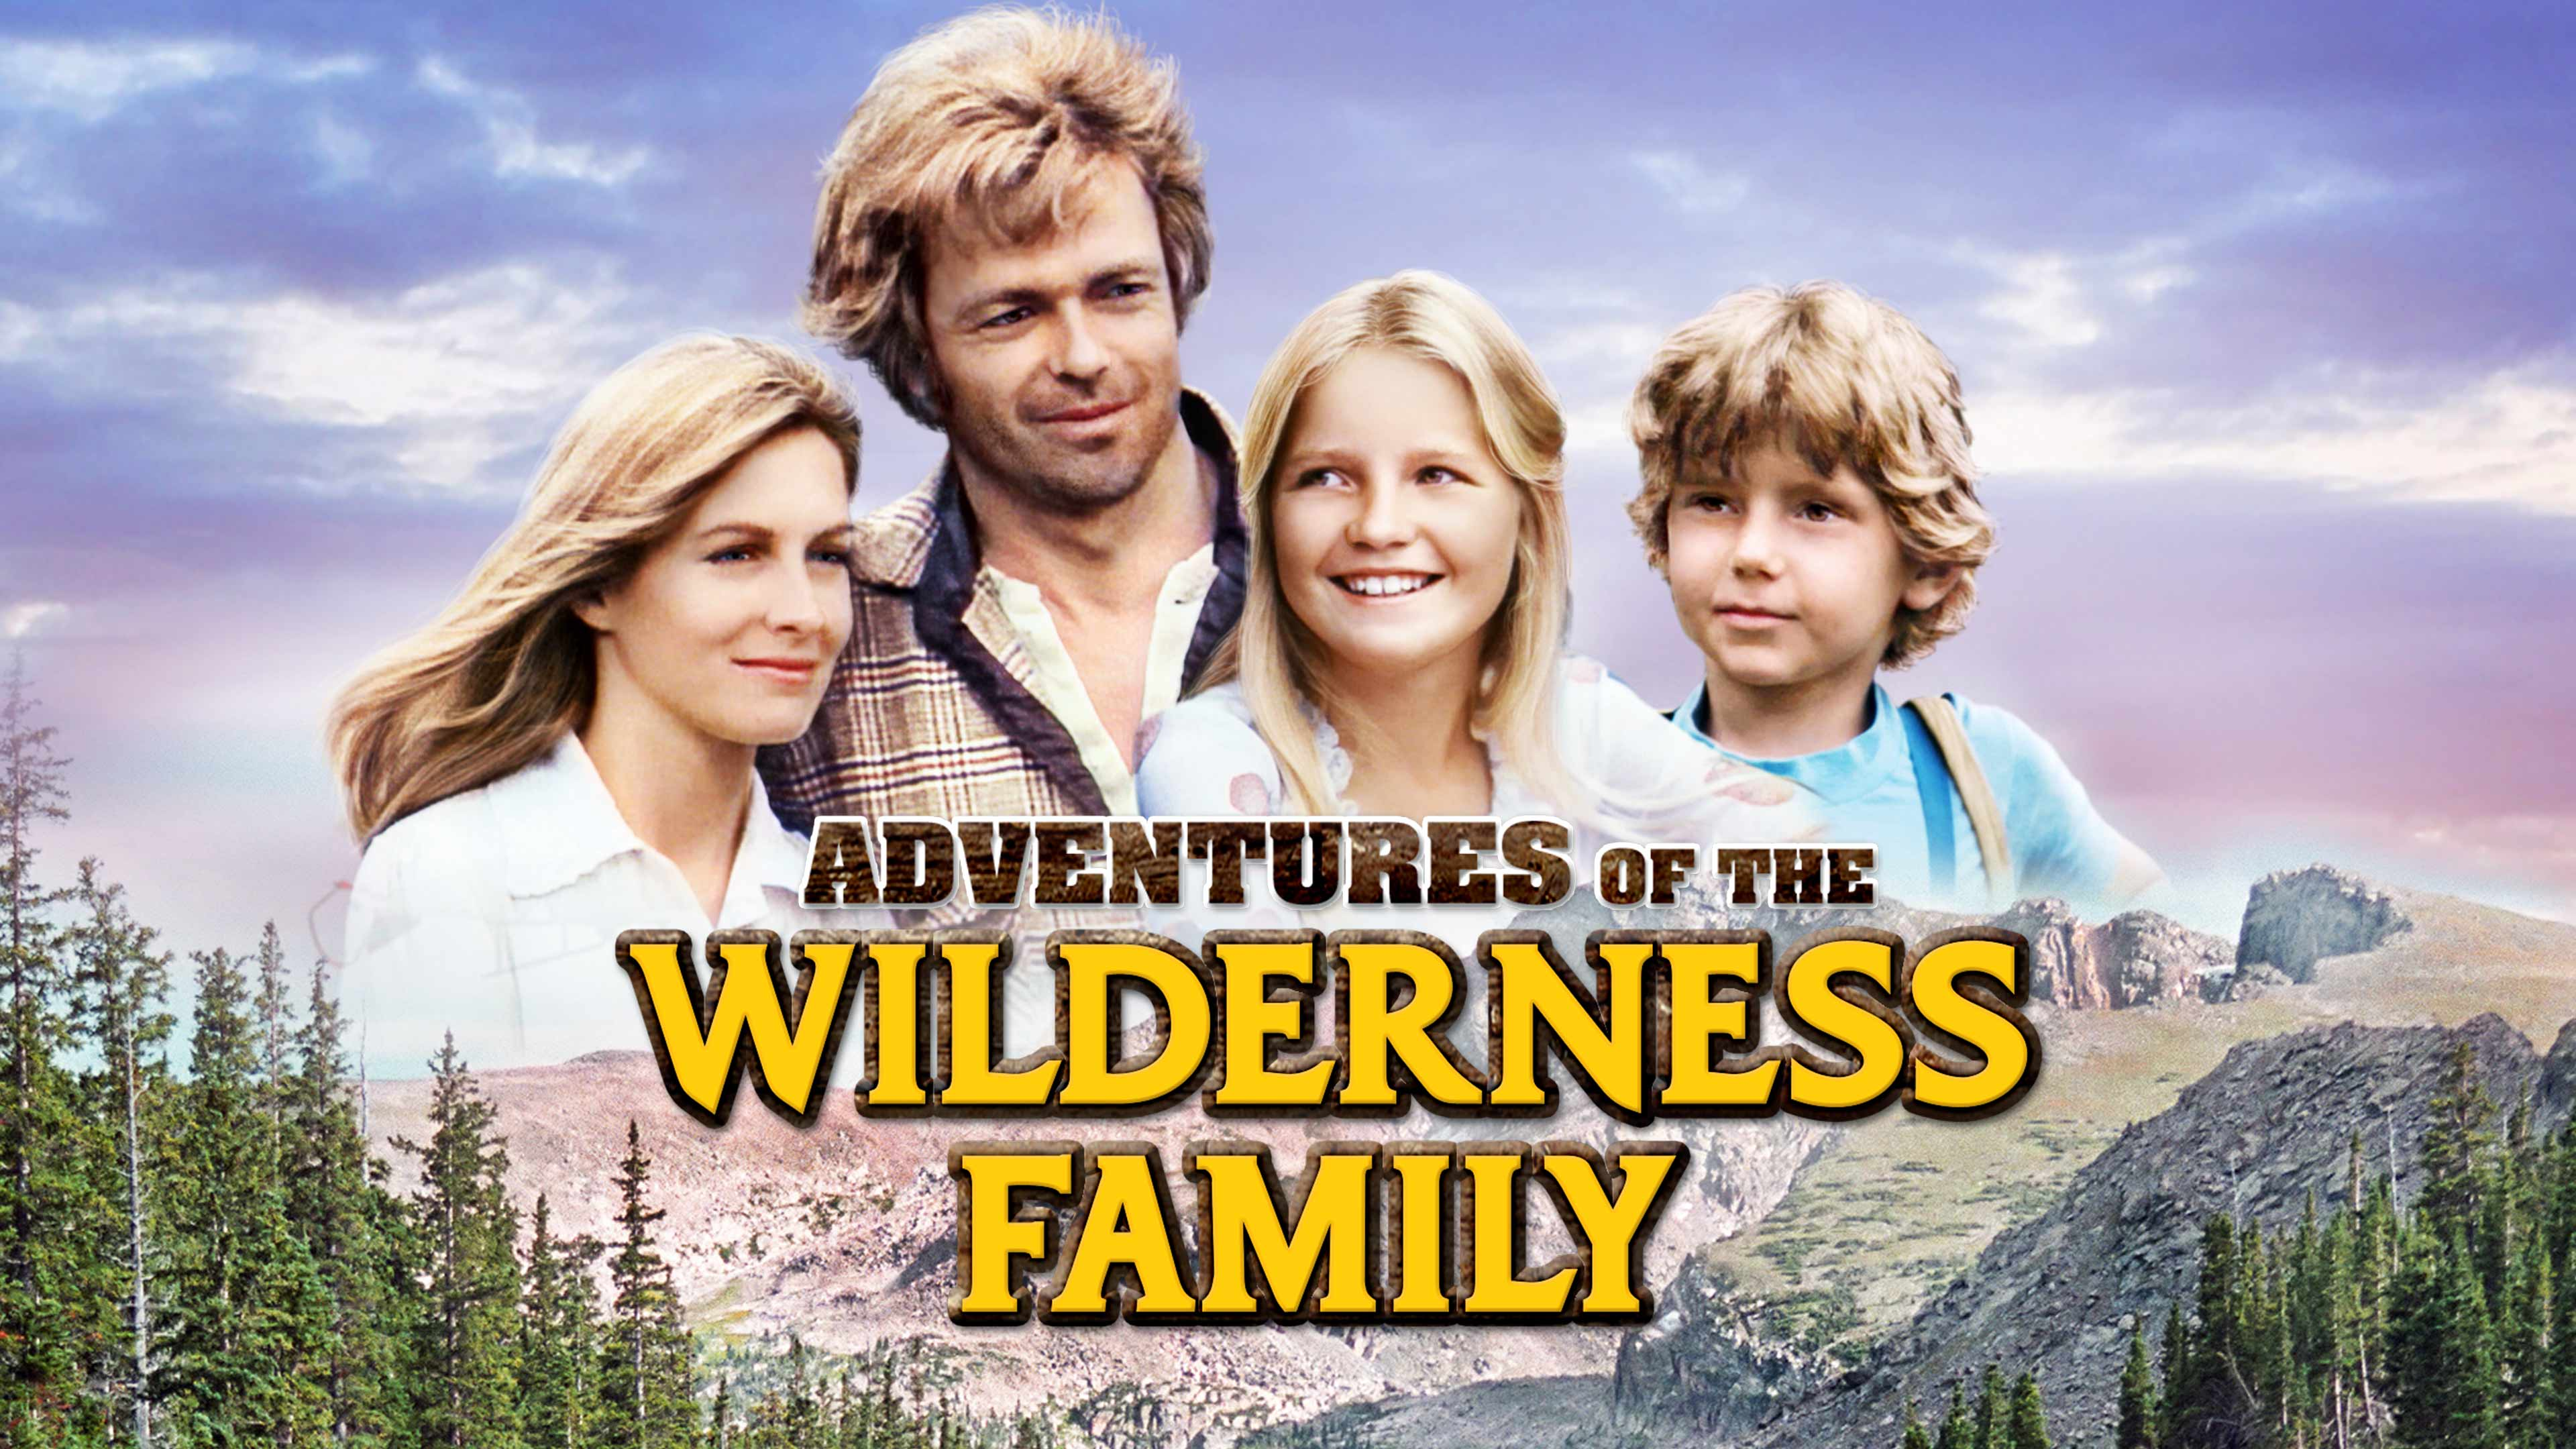 Adventure of The Wilderness Family Trailer